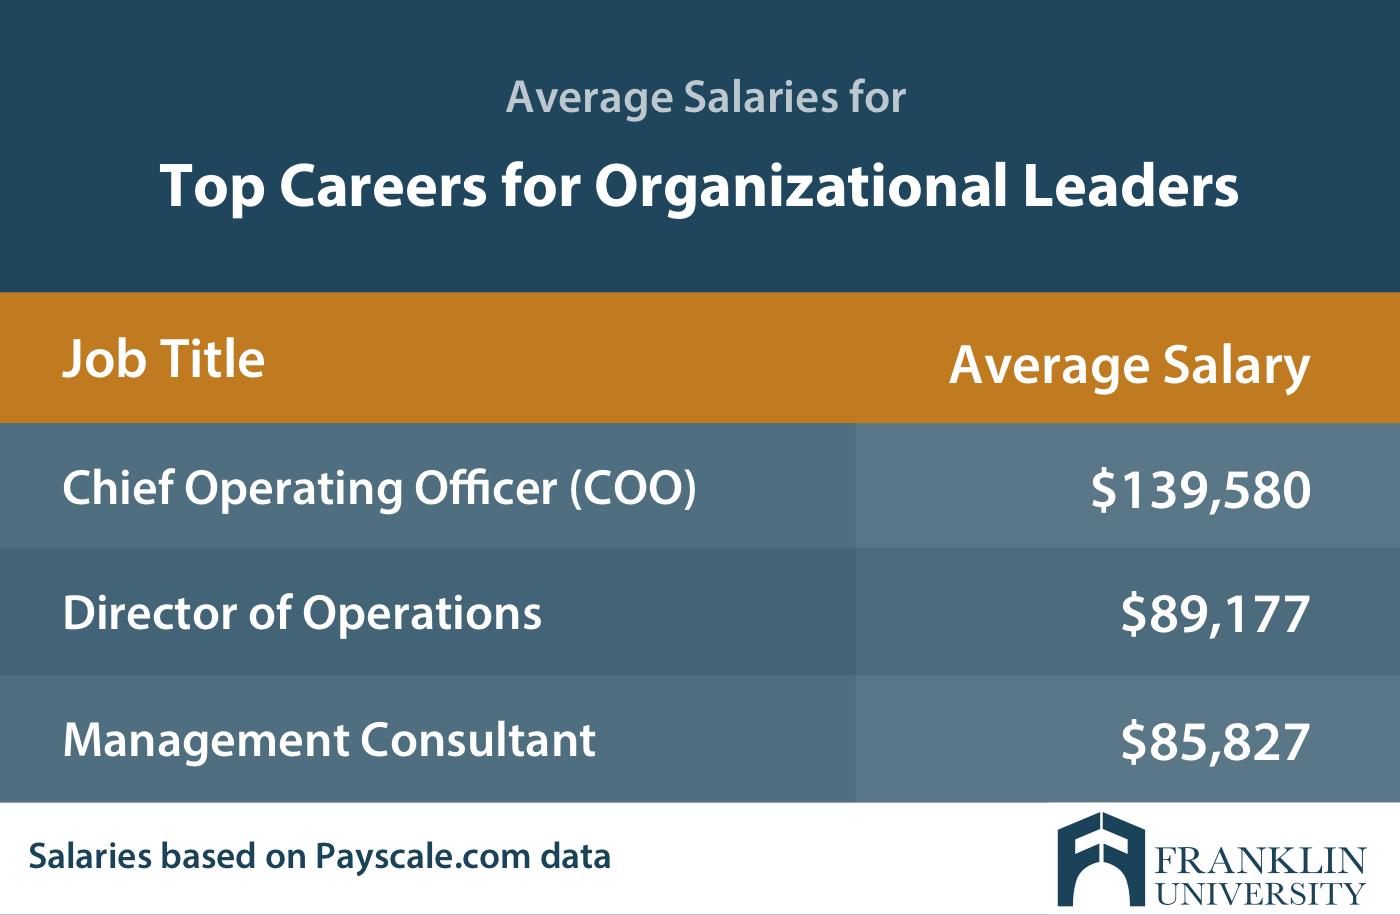 graphic describing the average salaries for top careers for organizational leaders